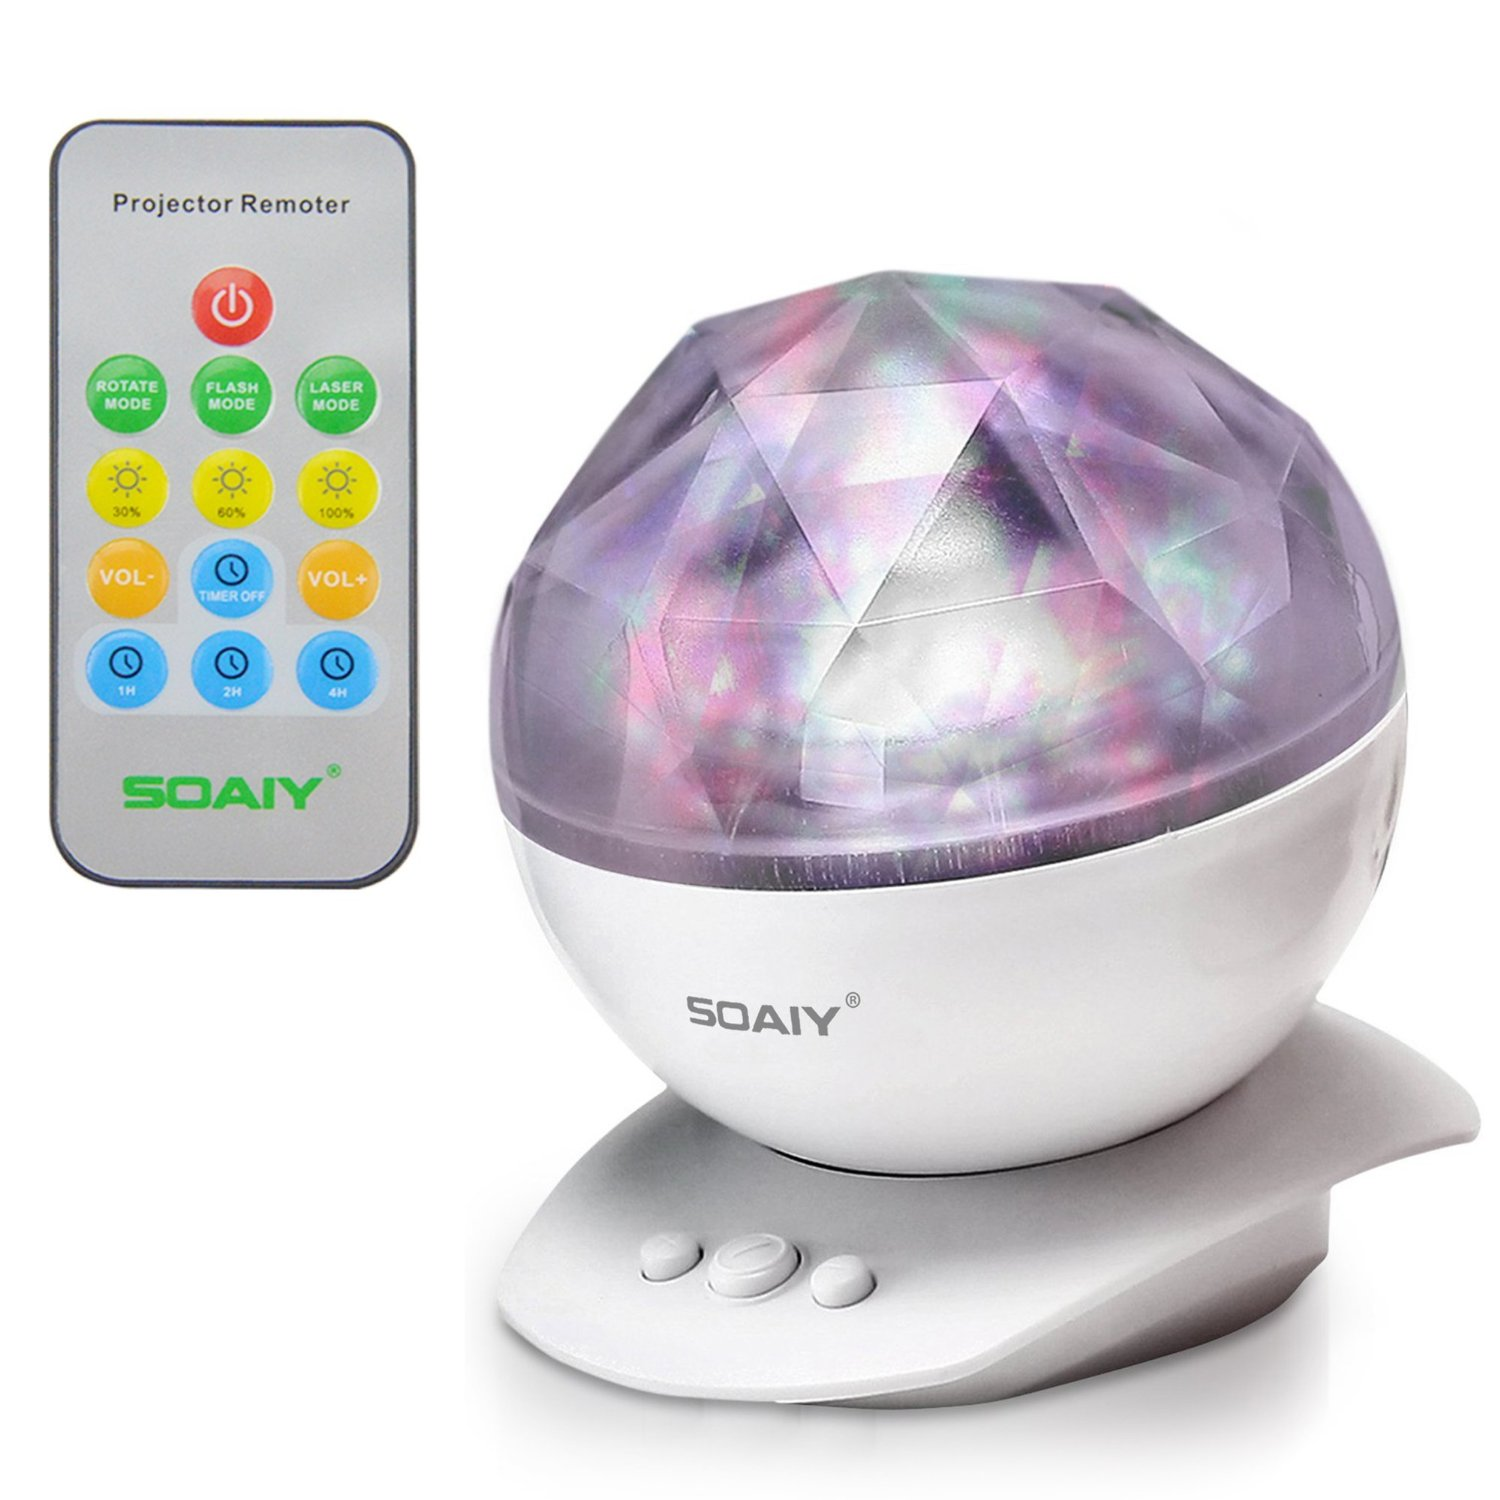 SOAIY Aurora Borealis Night Light with Timer Dimmer Speaker,8 Light Relaxing Color Changing LED Star Projector Decorative Remote Control Light Sleeping Lamp